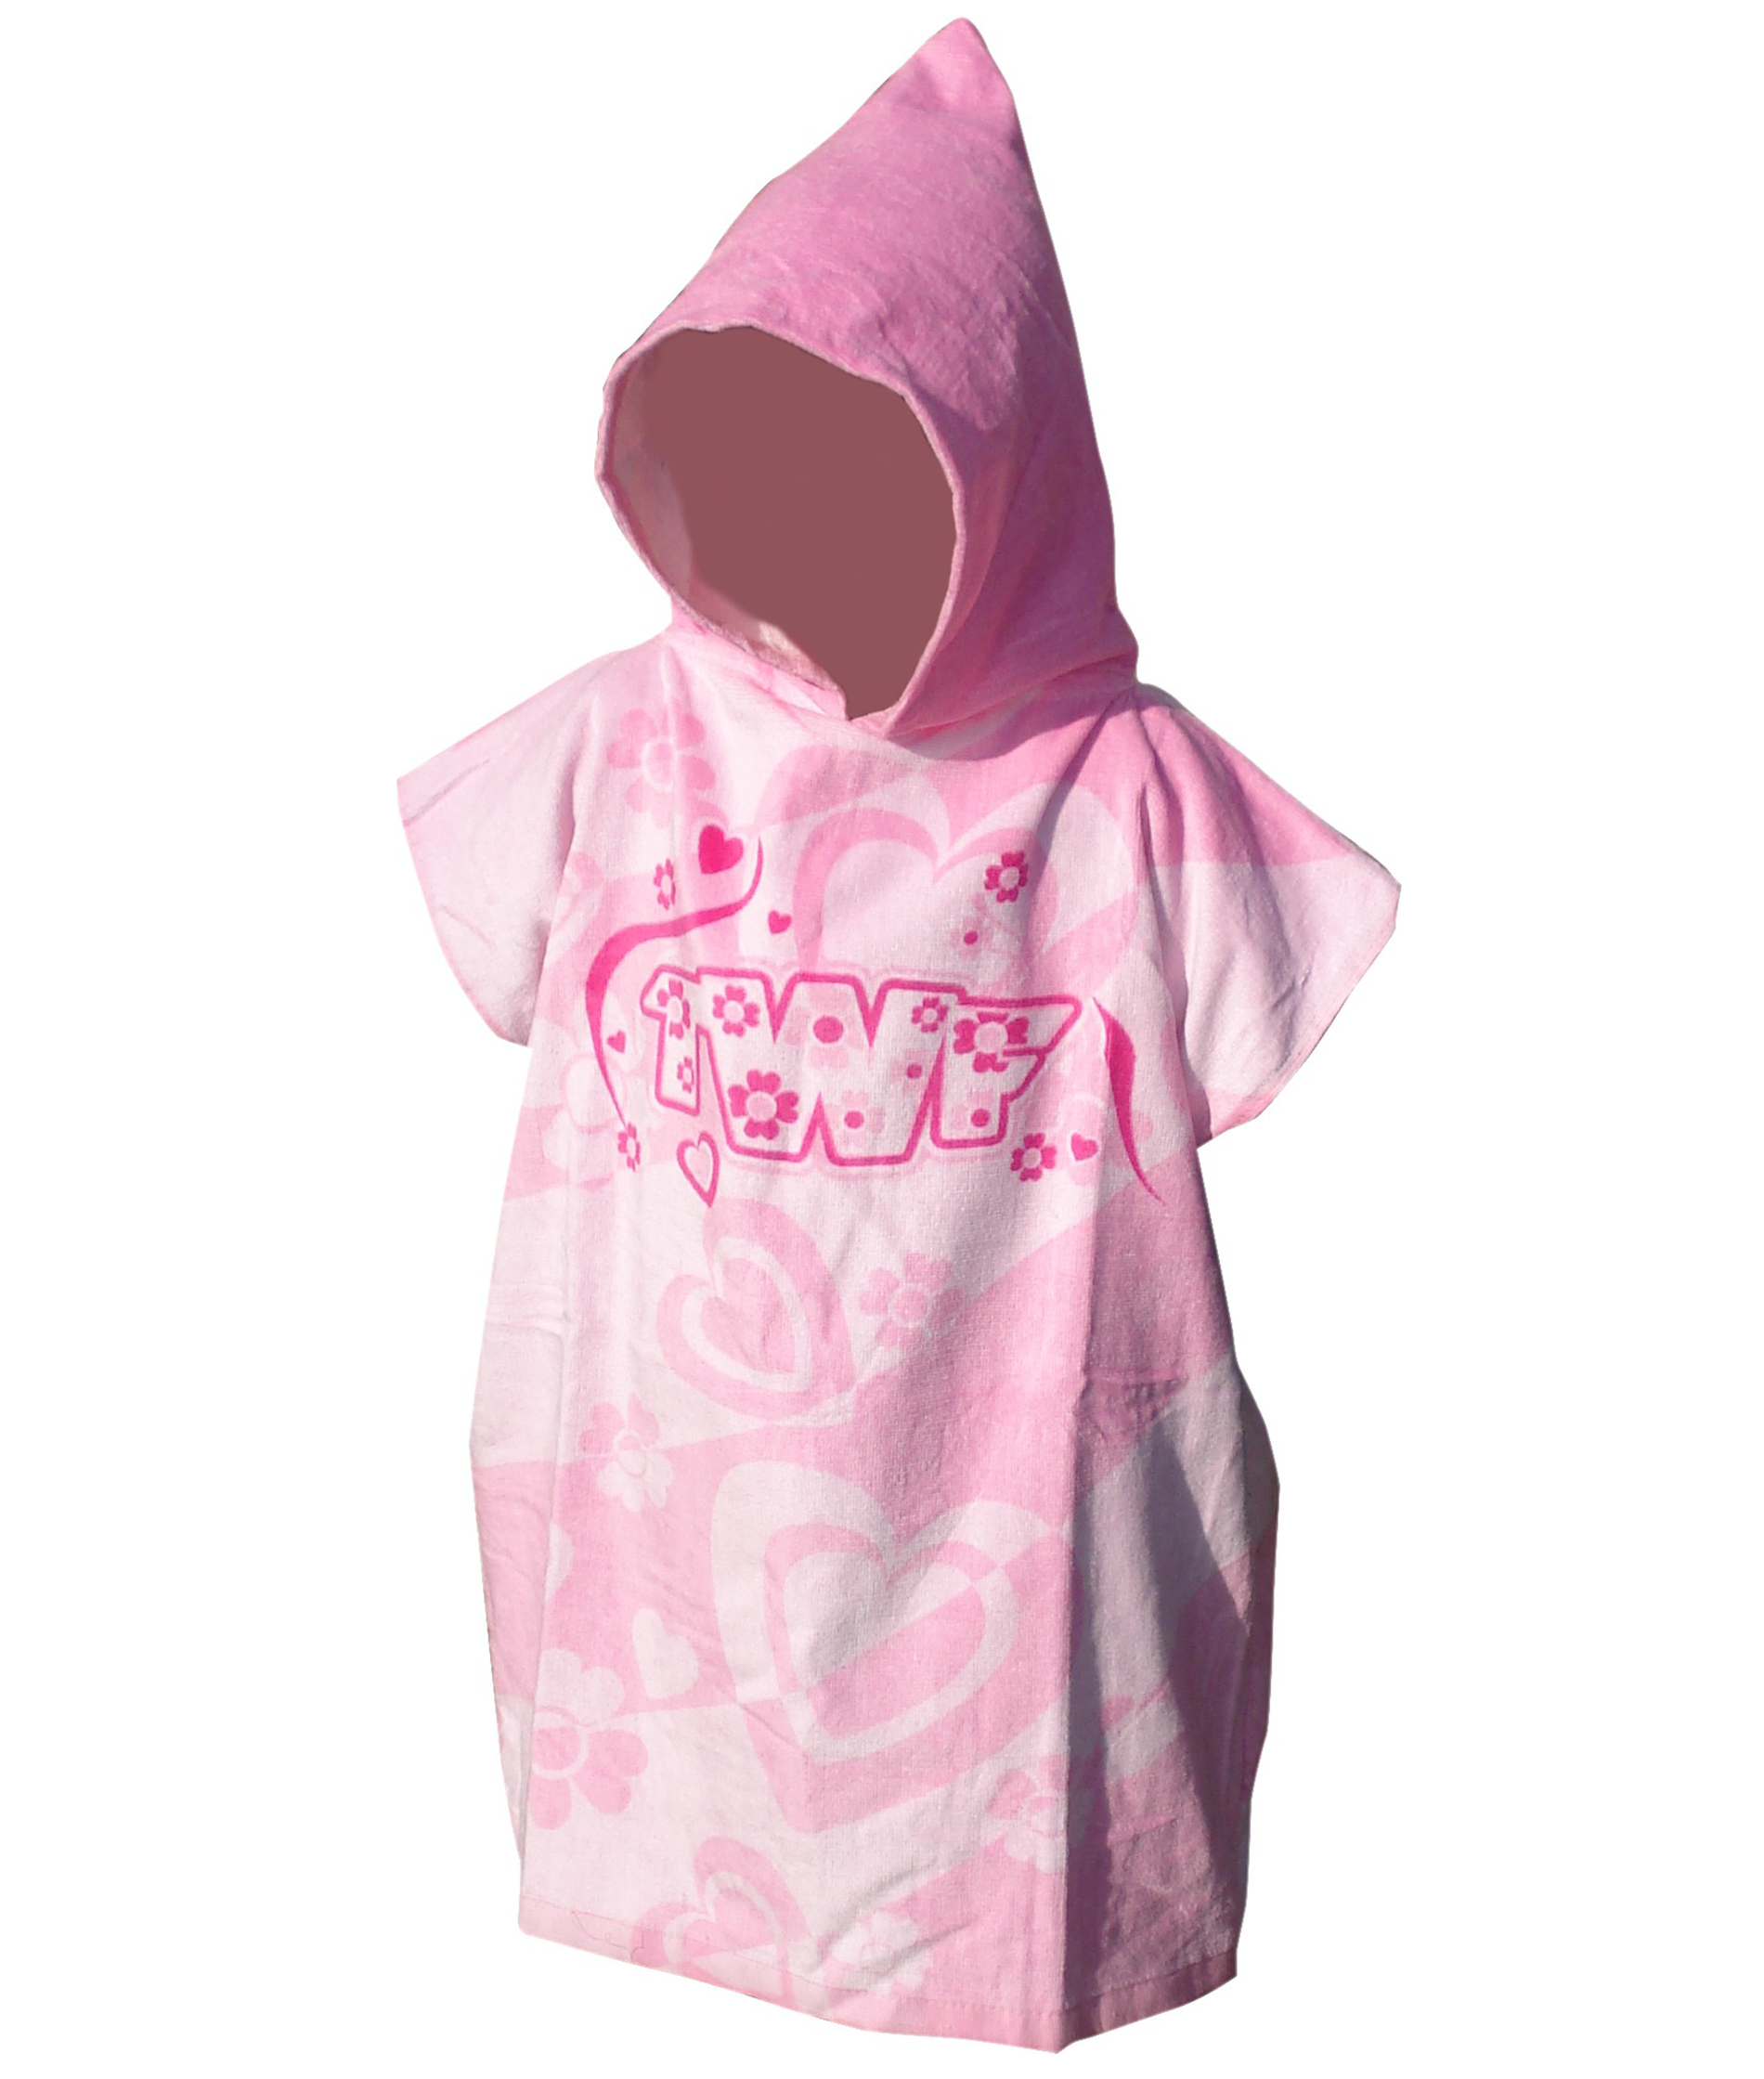 TWF Kids Hooded Towel Poncho - Pink